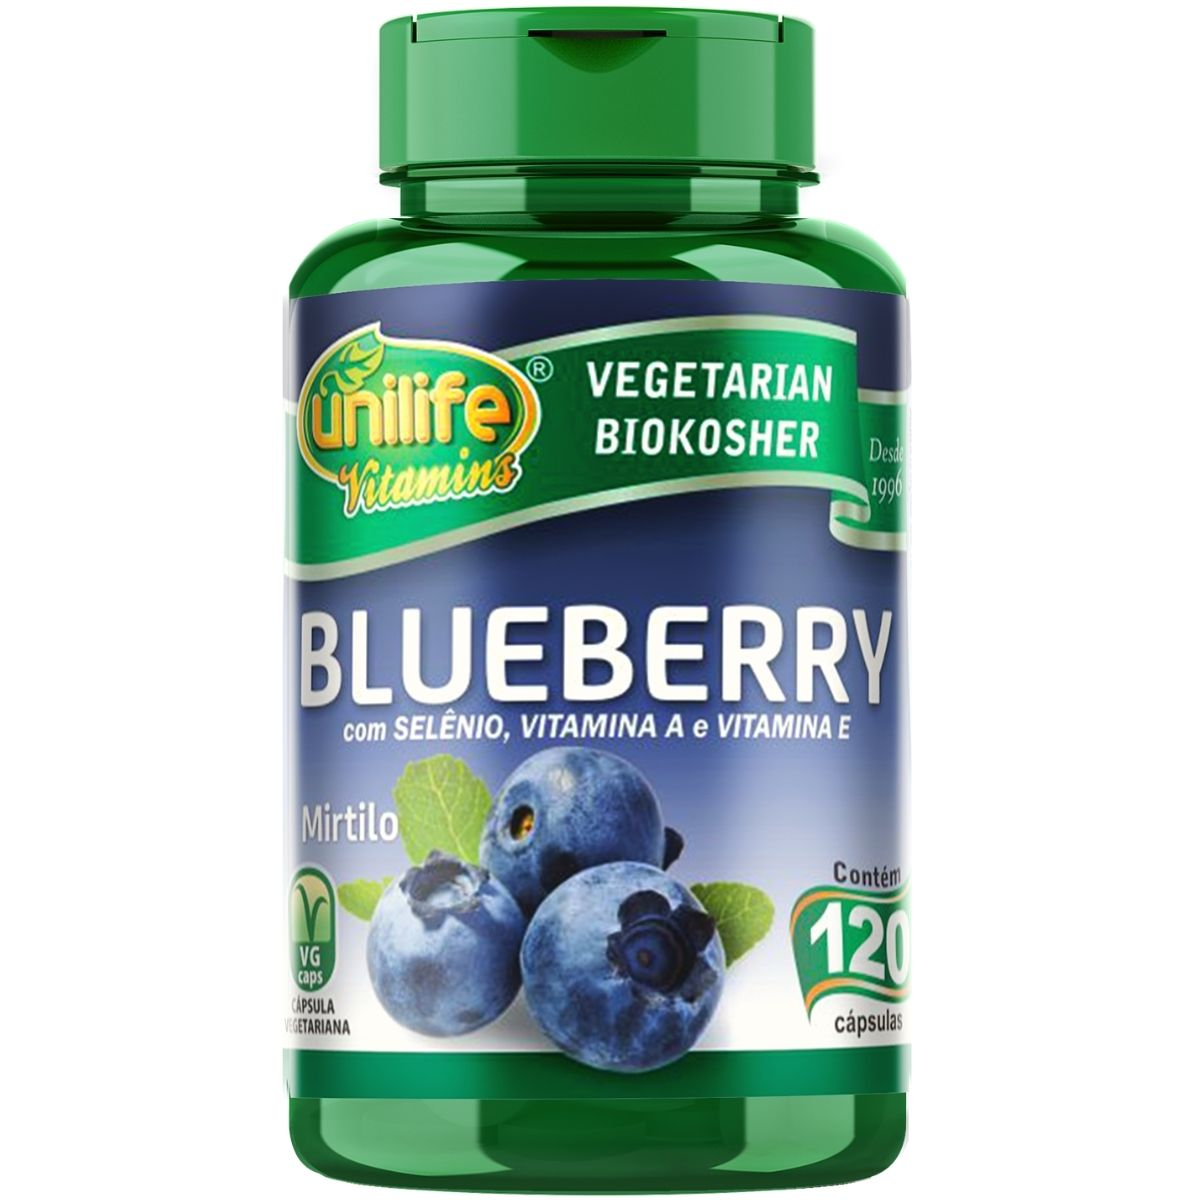 Blueberry Mirtilo Antioxidante 120 Cápsulas 550mg - Unilife